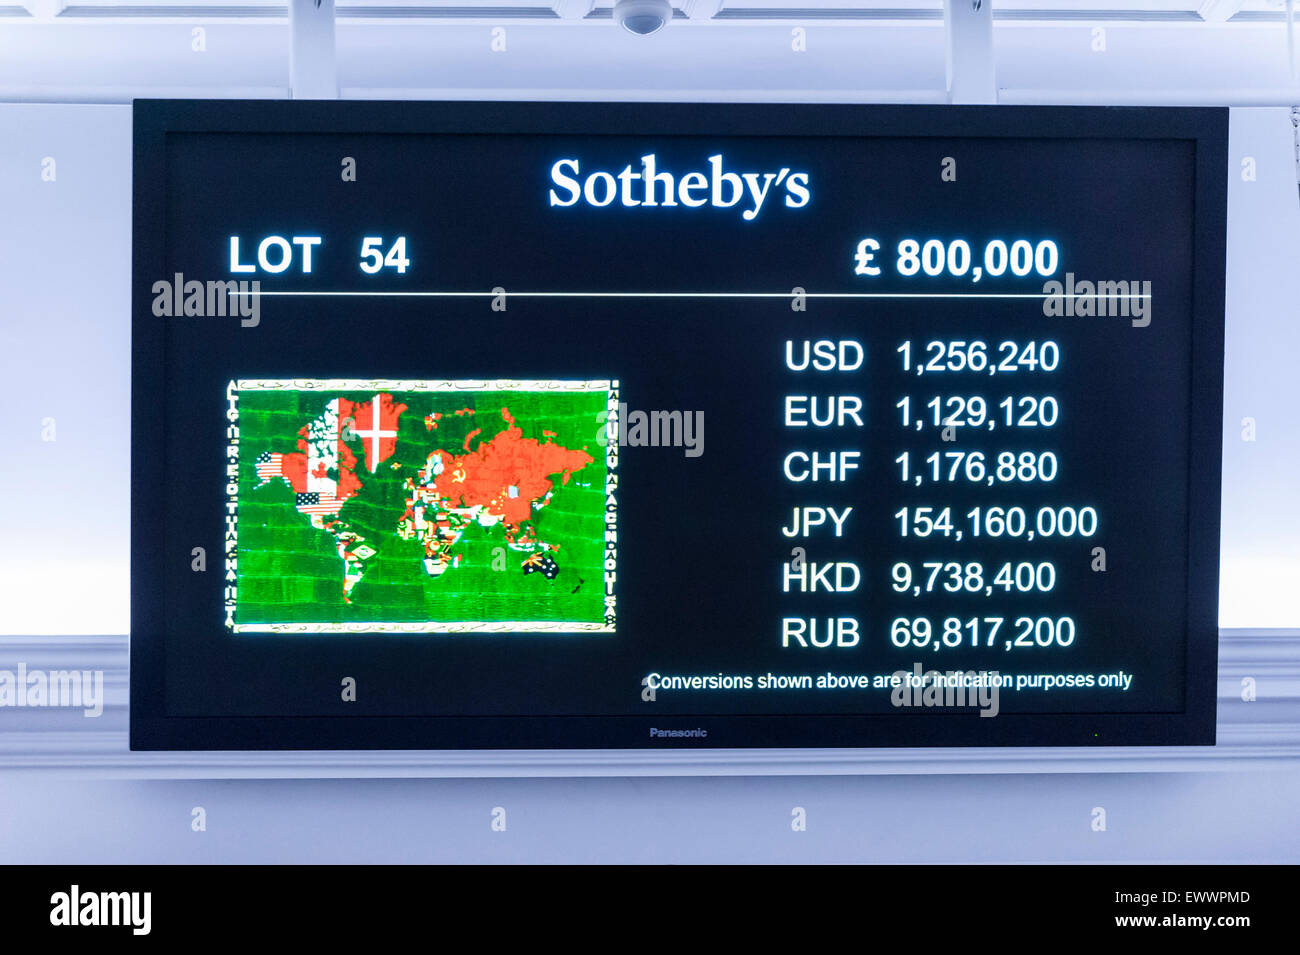 London, UK. 1 July 2015. An LCD monitor shows Alighiero Boetti's 'Mappa' (sold for a hammer price of - Stock Image